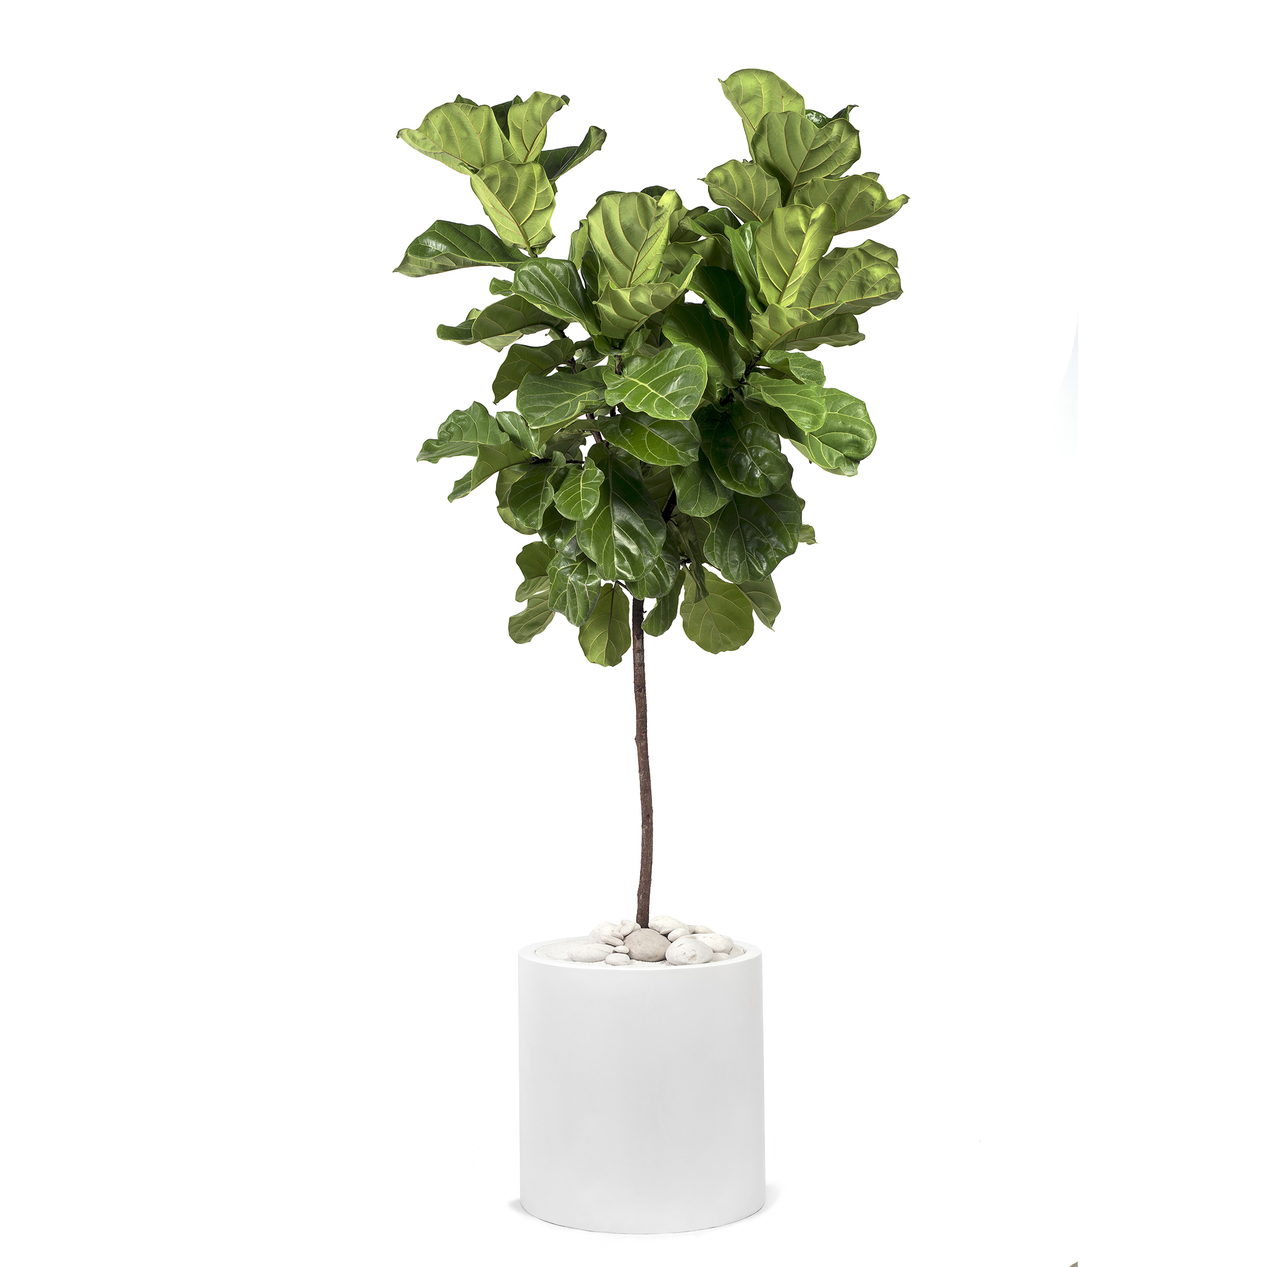 FICUS LYRATA (FIDDLE LEAF TREE) IN WHITE POT